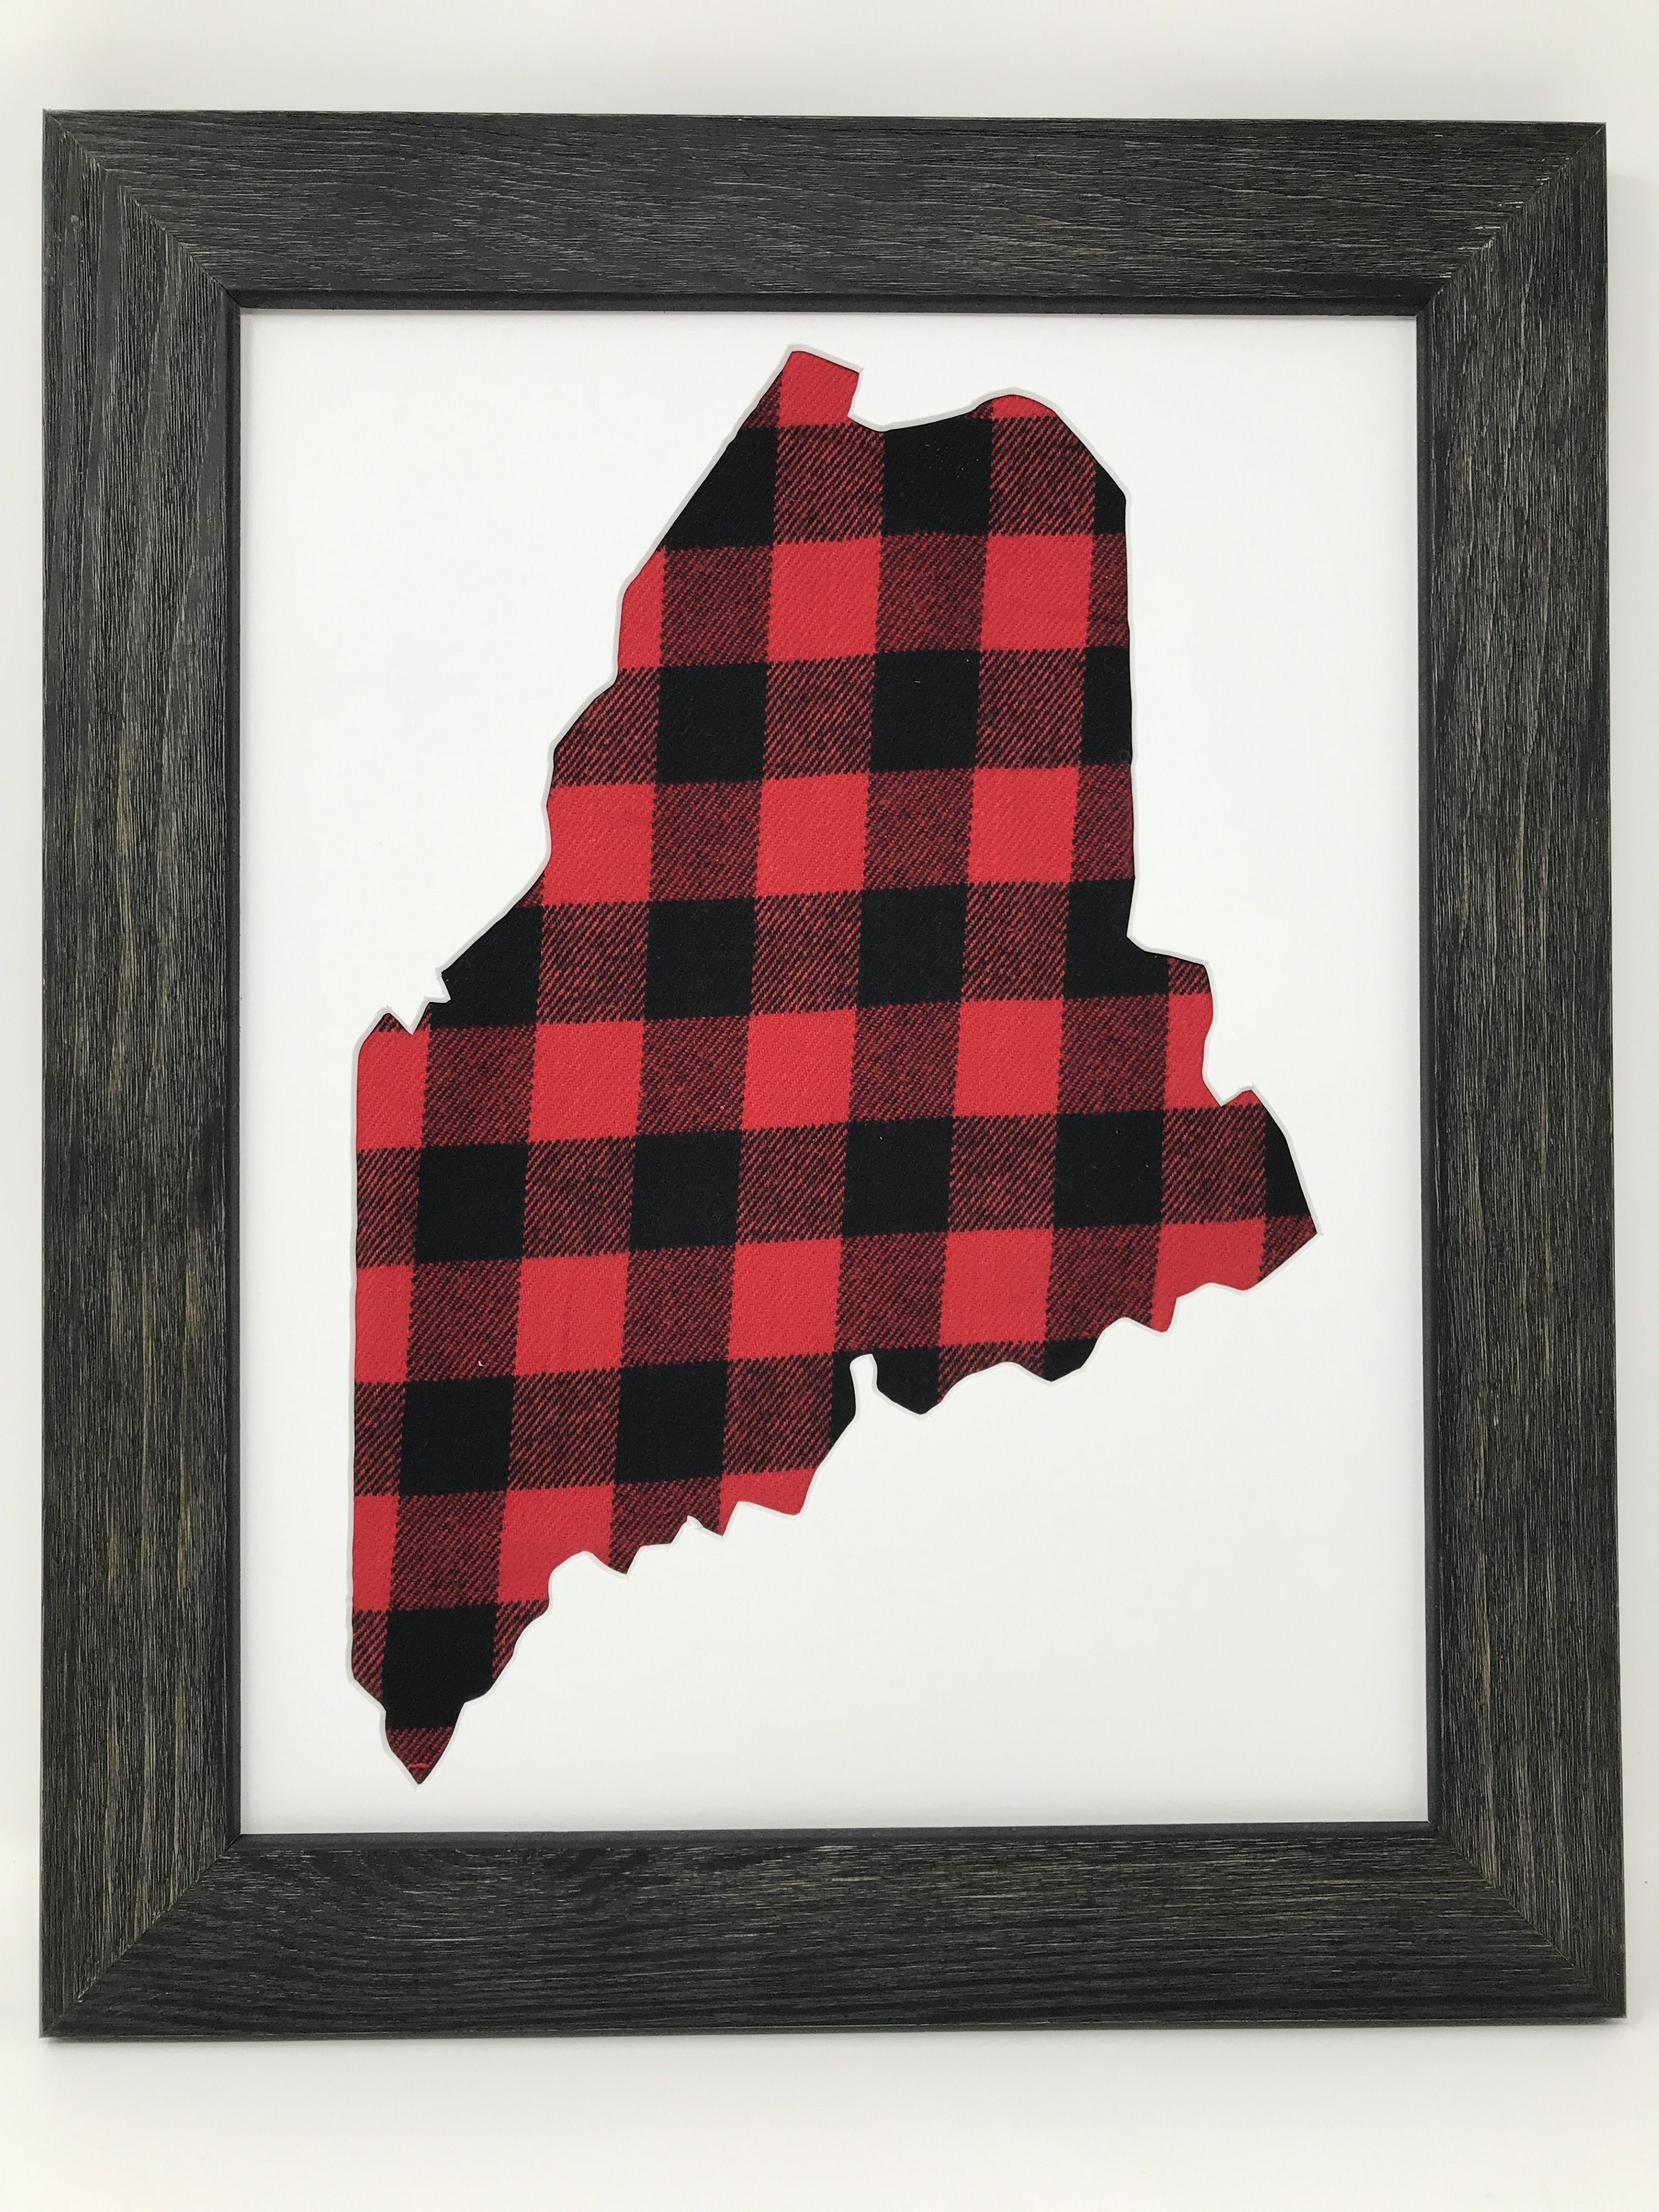 rustic black wood frame. Rustic Black Solid Wood Frame With Maine In Buffalo Plaid R